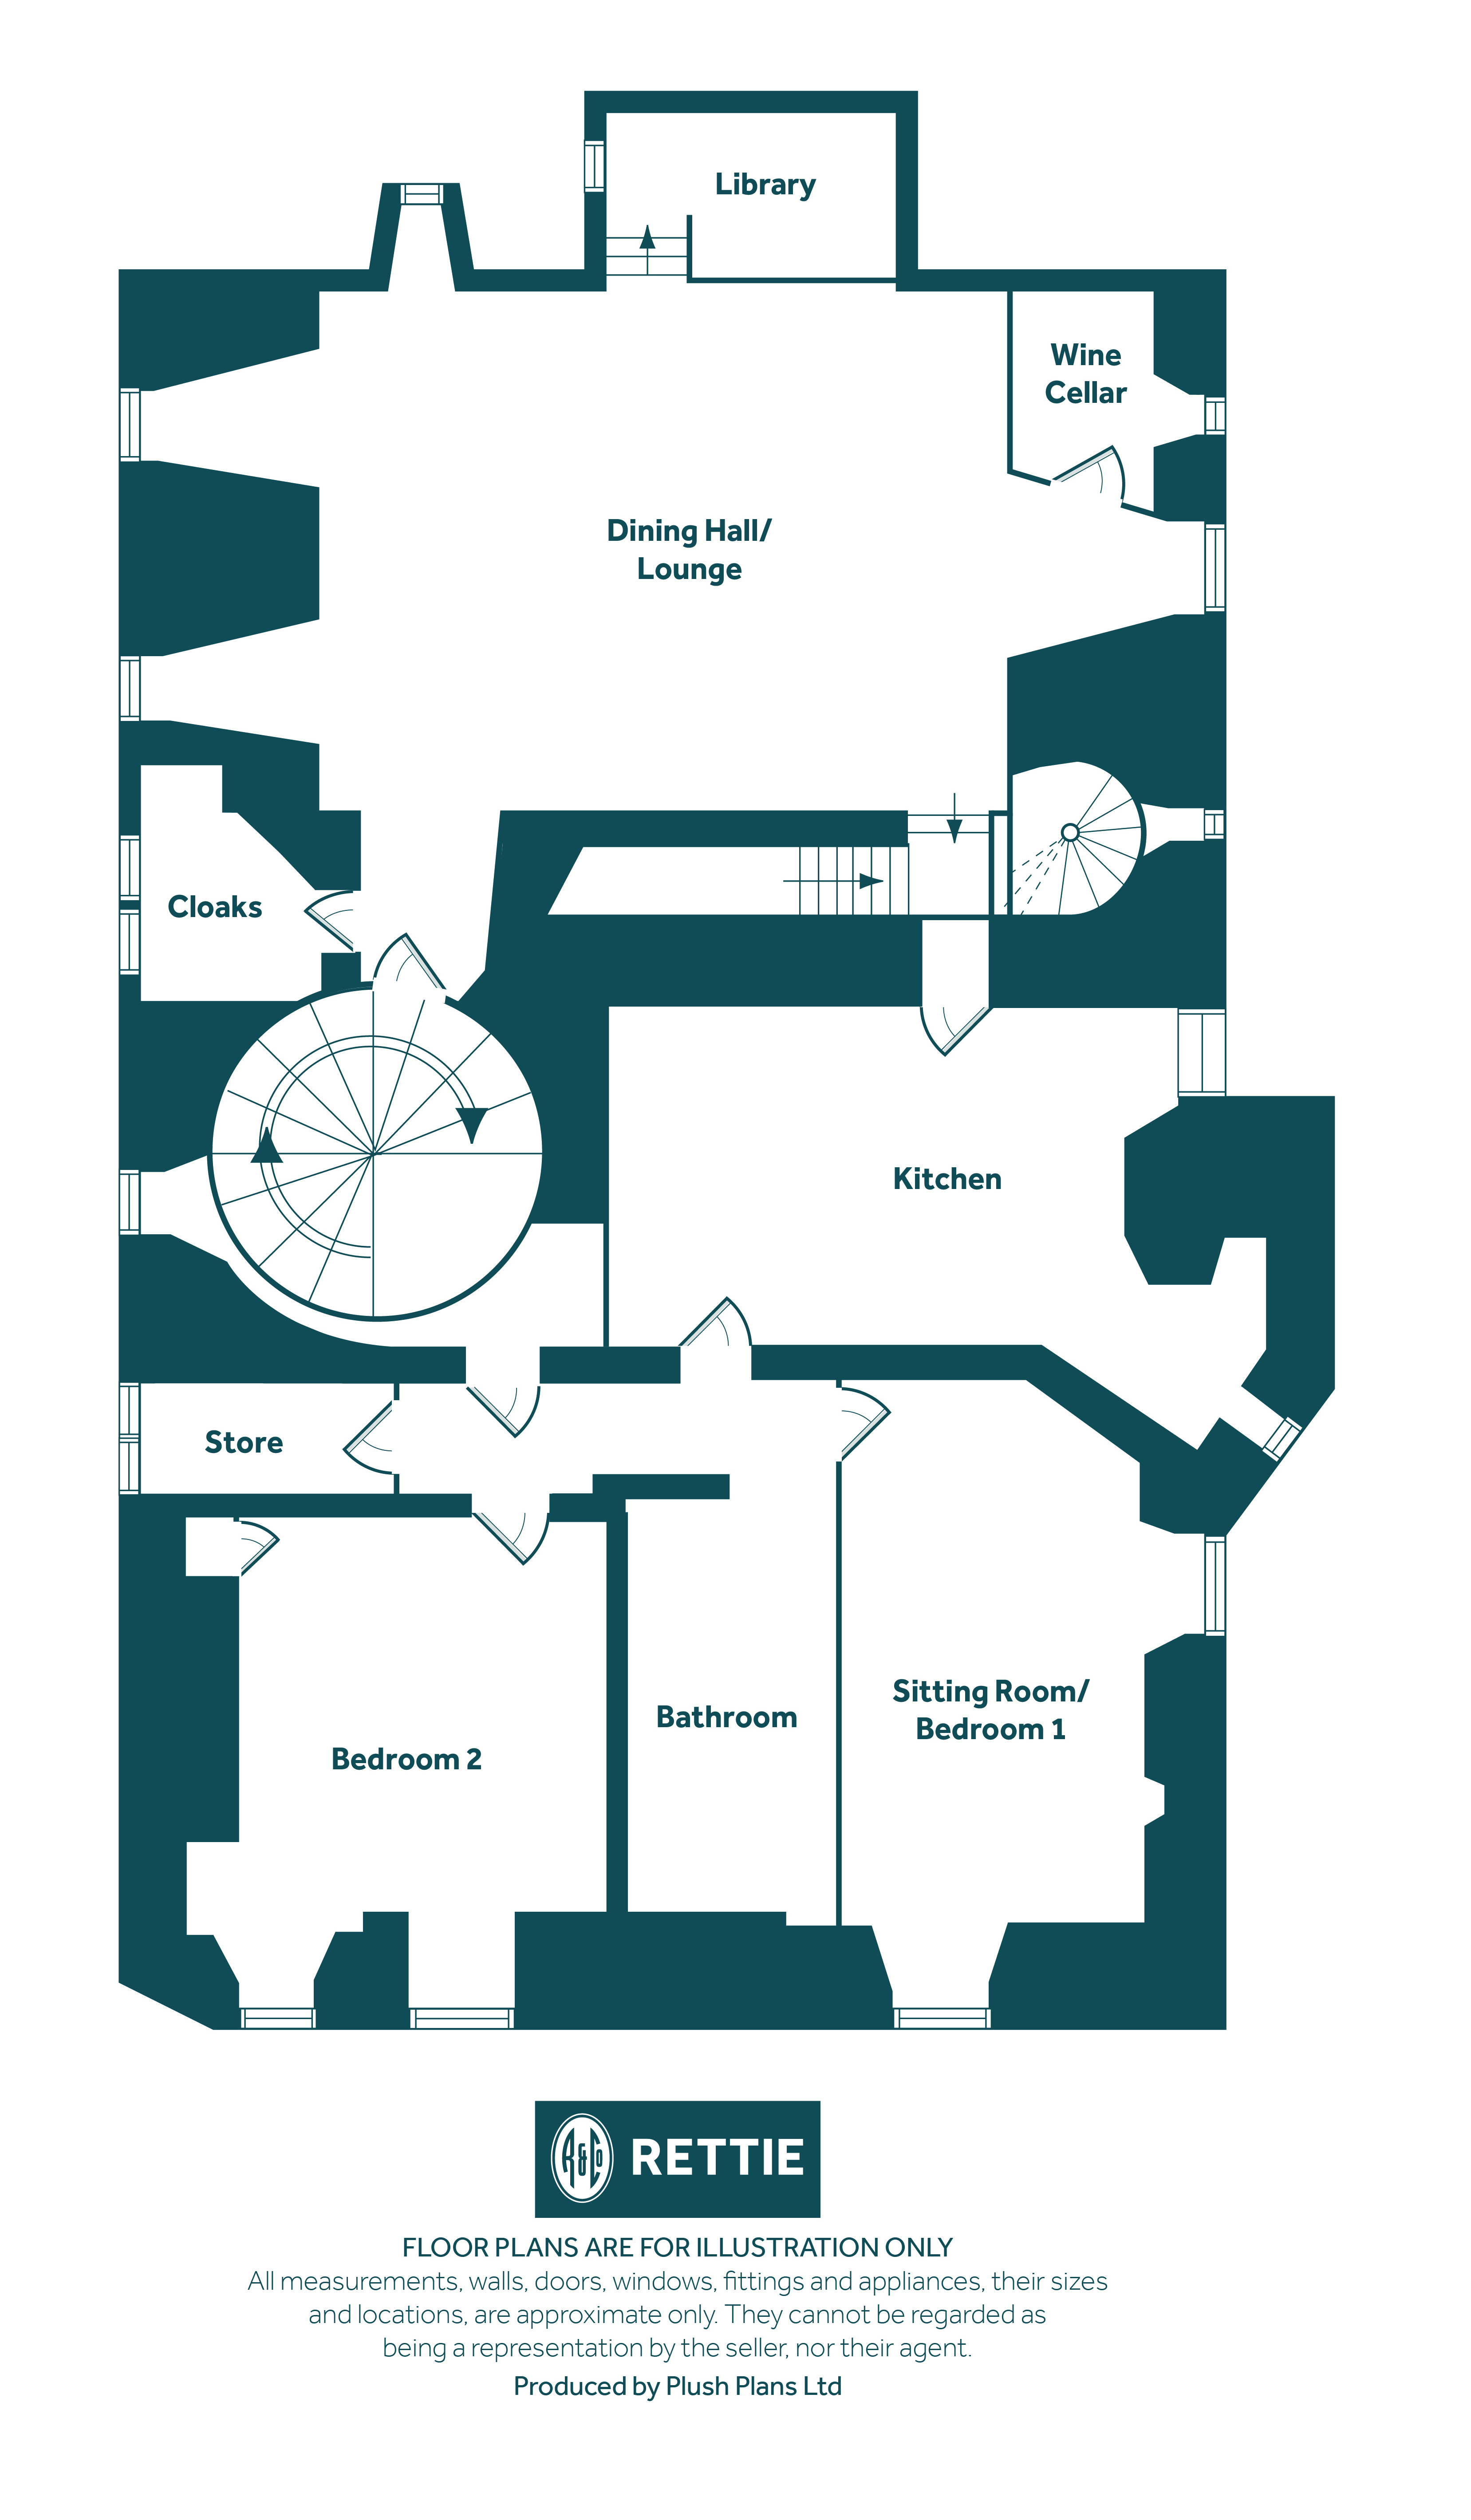 Floorplans for Dalzell House, Dalzell Drive, Motherwell, ML1